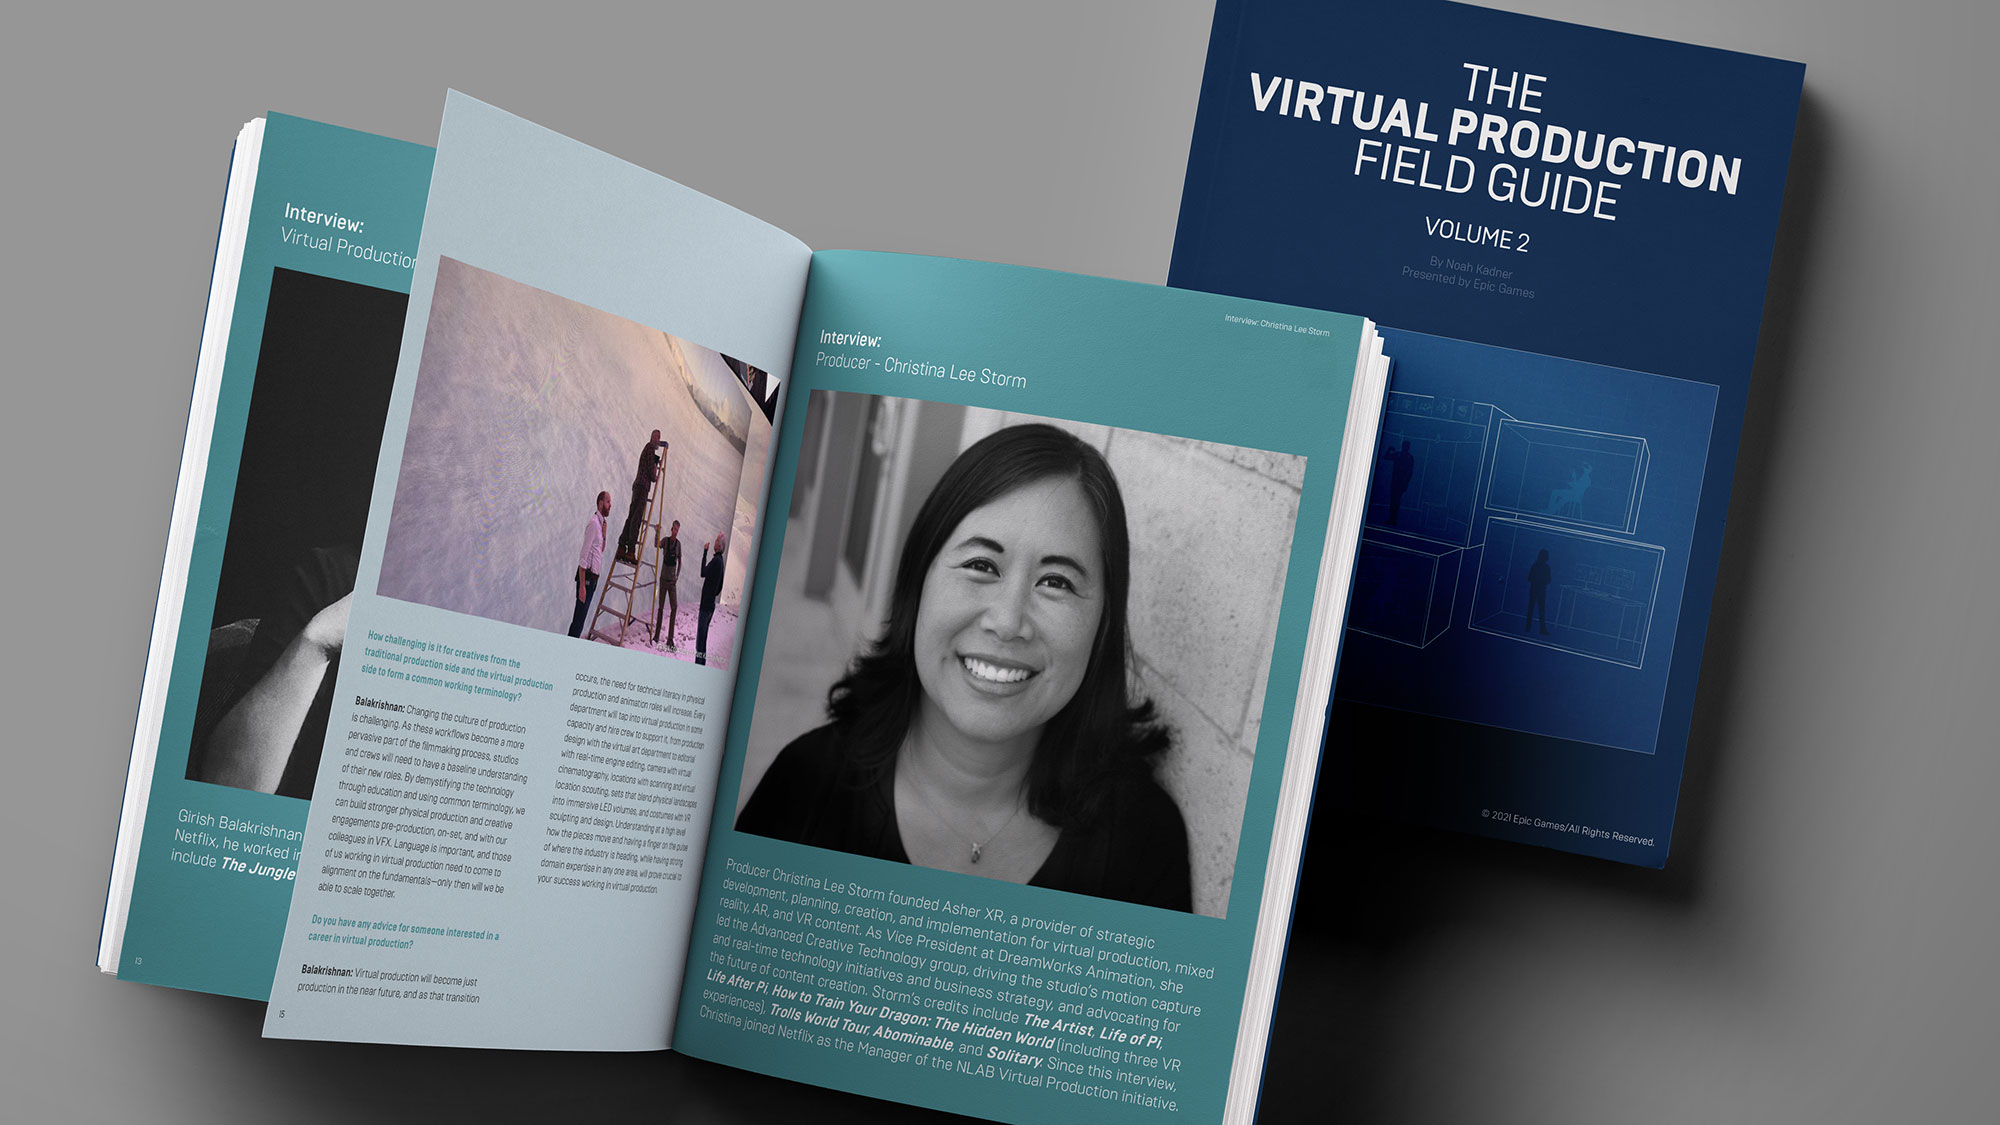 The Virtual Production Field Guide: Epic Games releases Volume 2